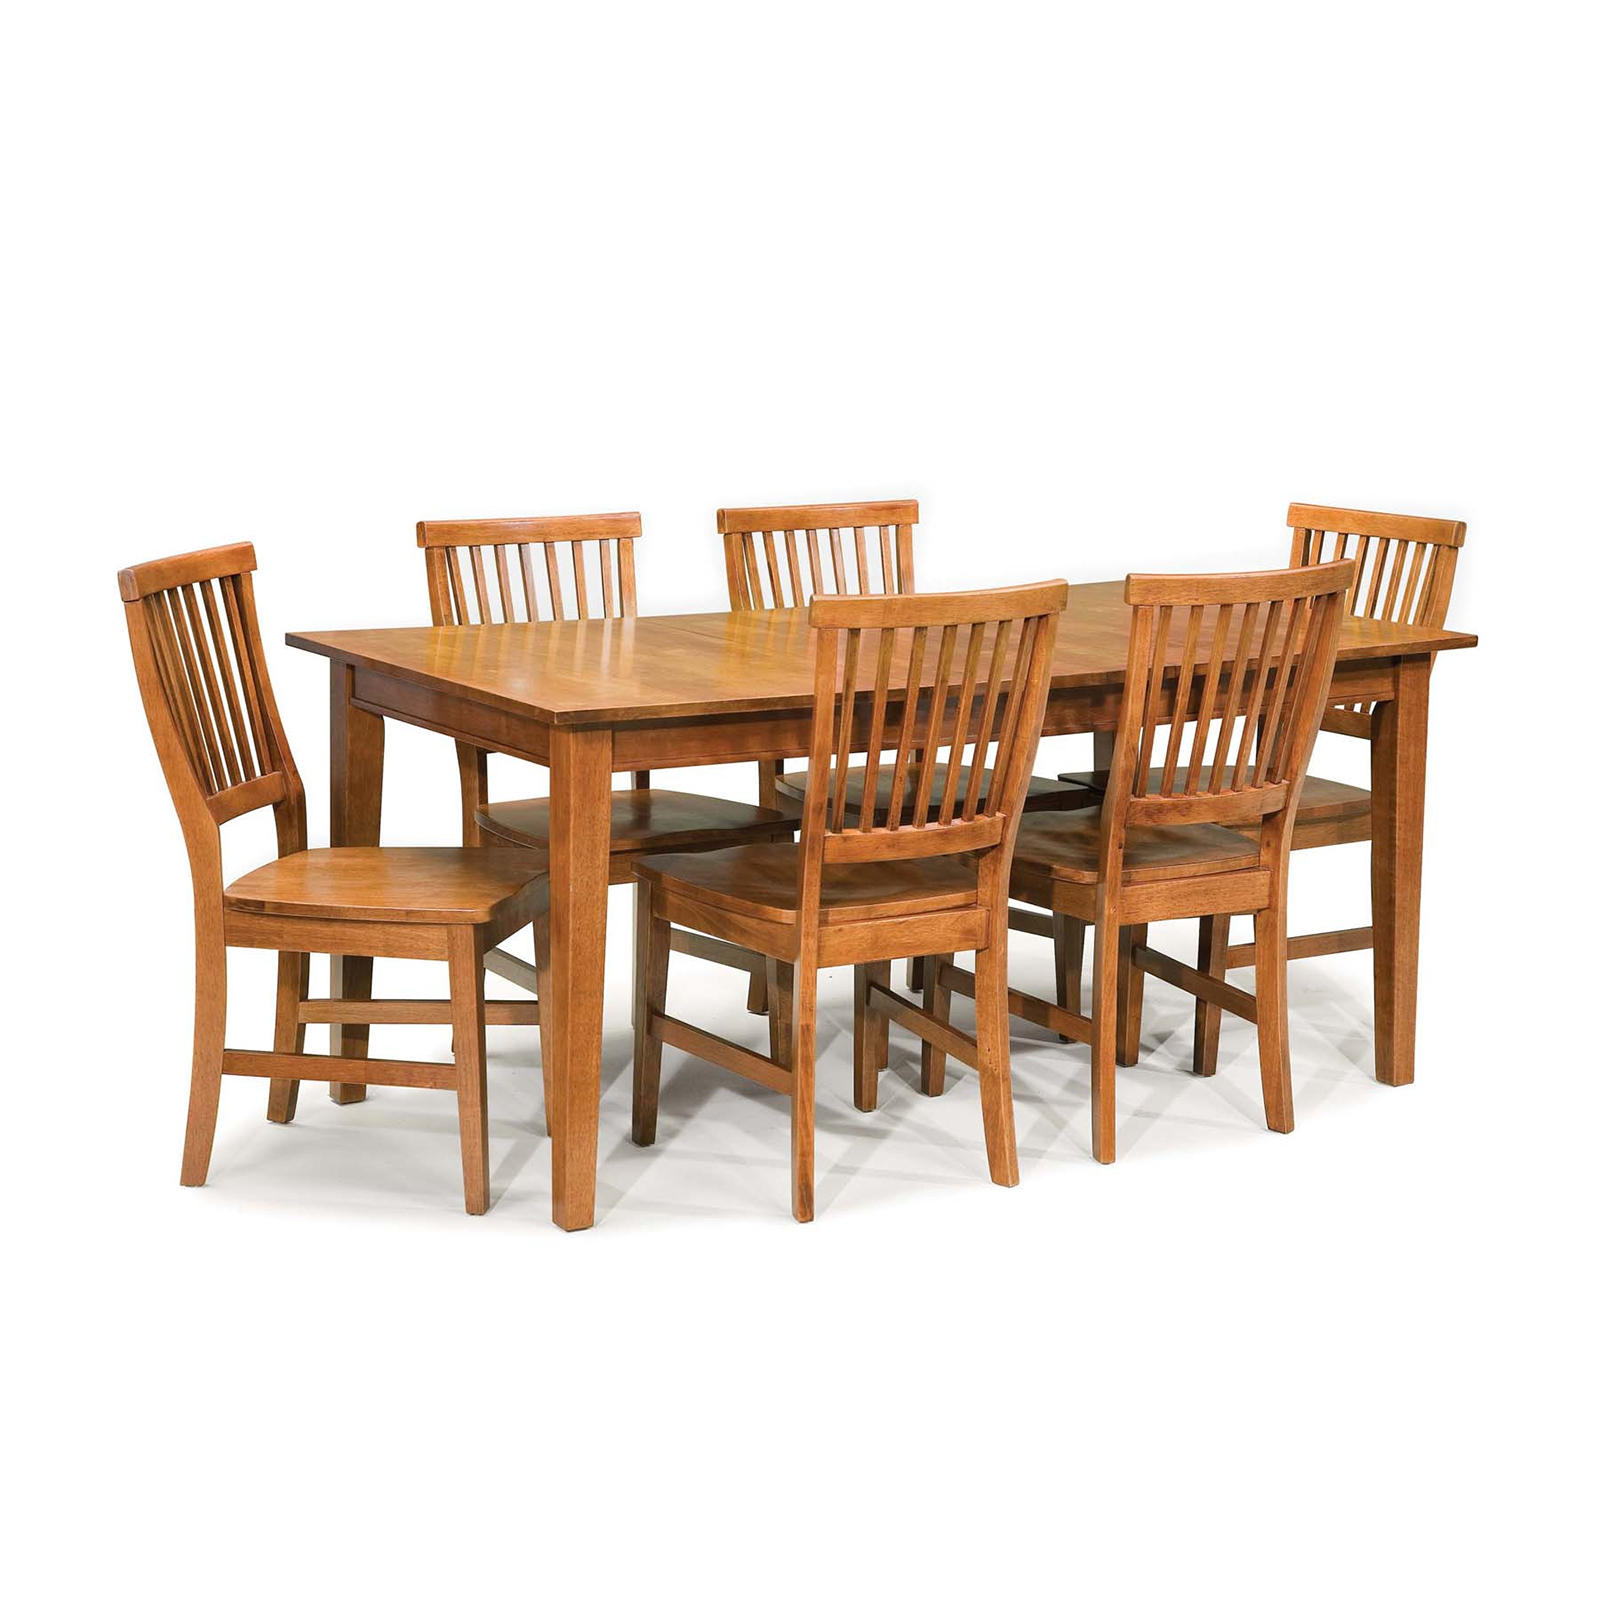 Home Styles Monarch 7 Piece Dining Table Set with 6 Double X-Back Chairs - White \u0026 Oak | Hayneedle  sc 1 st  Hayneedle : 7 piece dining table set - pezcame.com